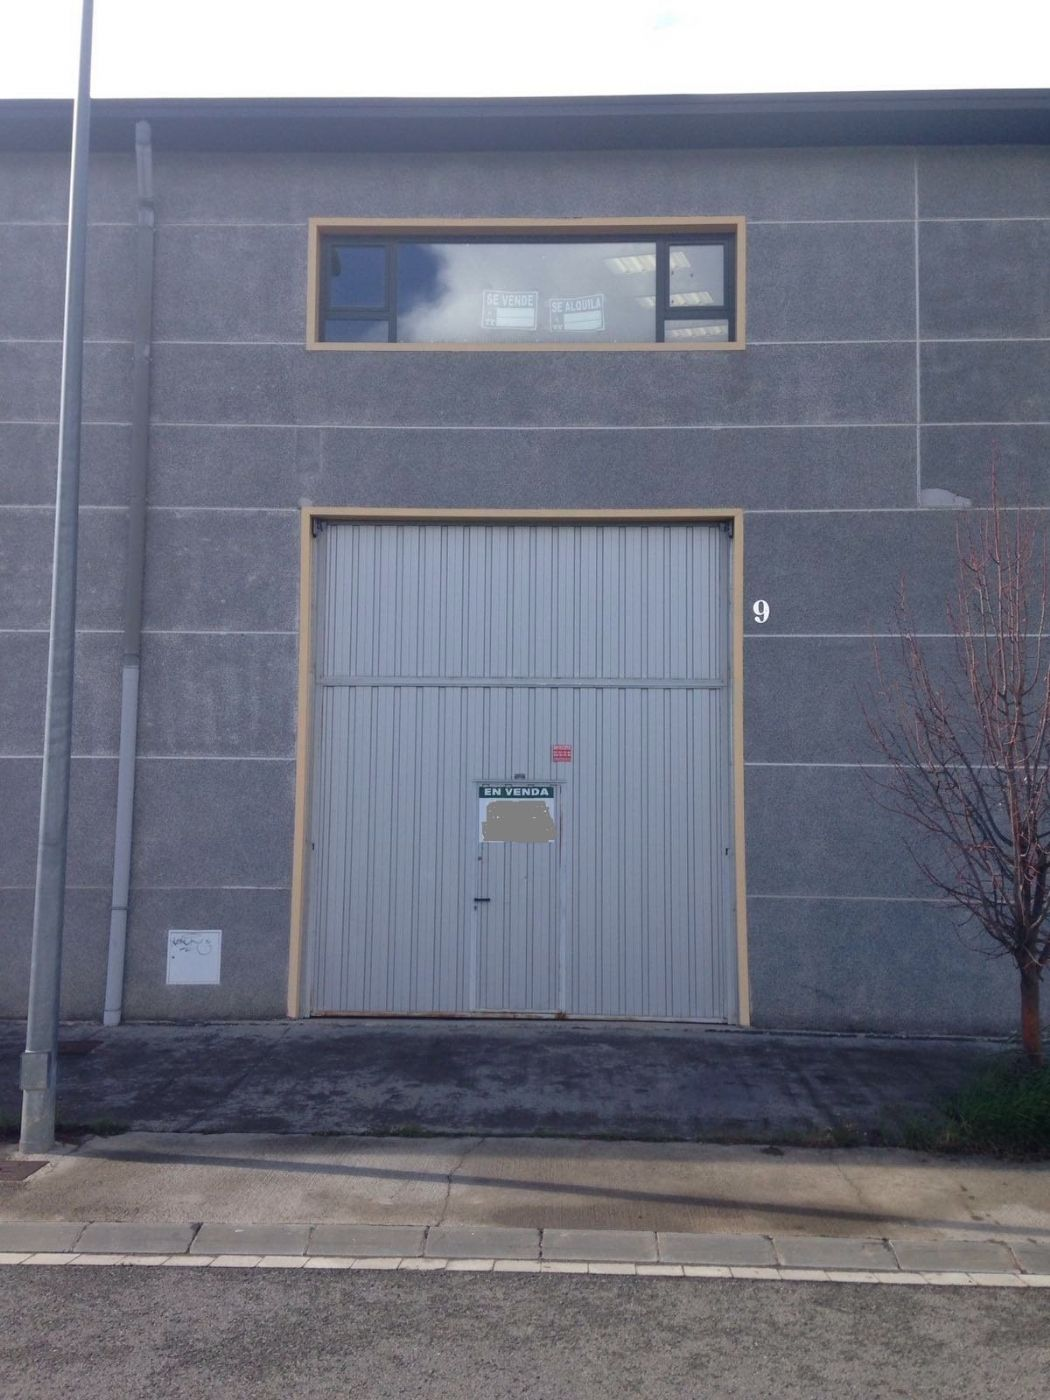 Affitto Capannone industriale in Almogavers, 9. Nave industrial o comercial en puigcerda